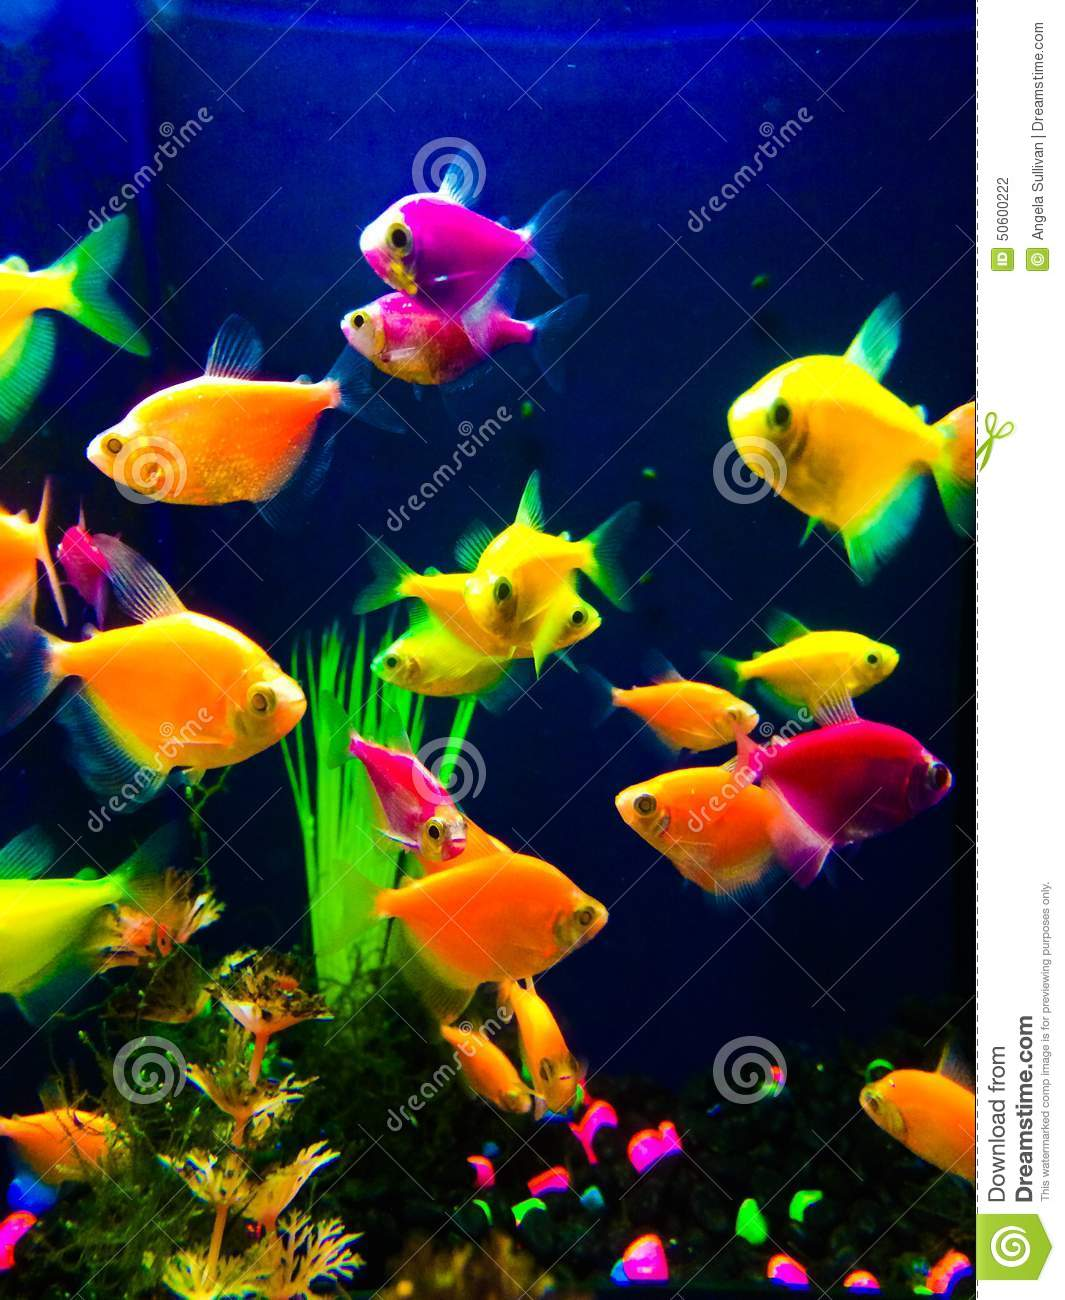 Neon colorful fish aquarium stock photo image 50600222 for Neon fish tank